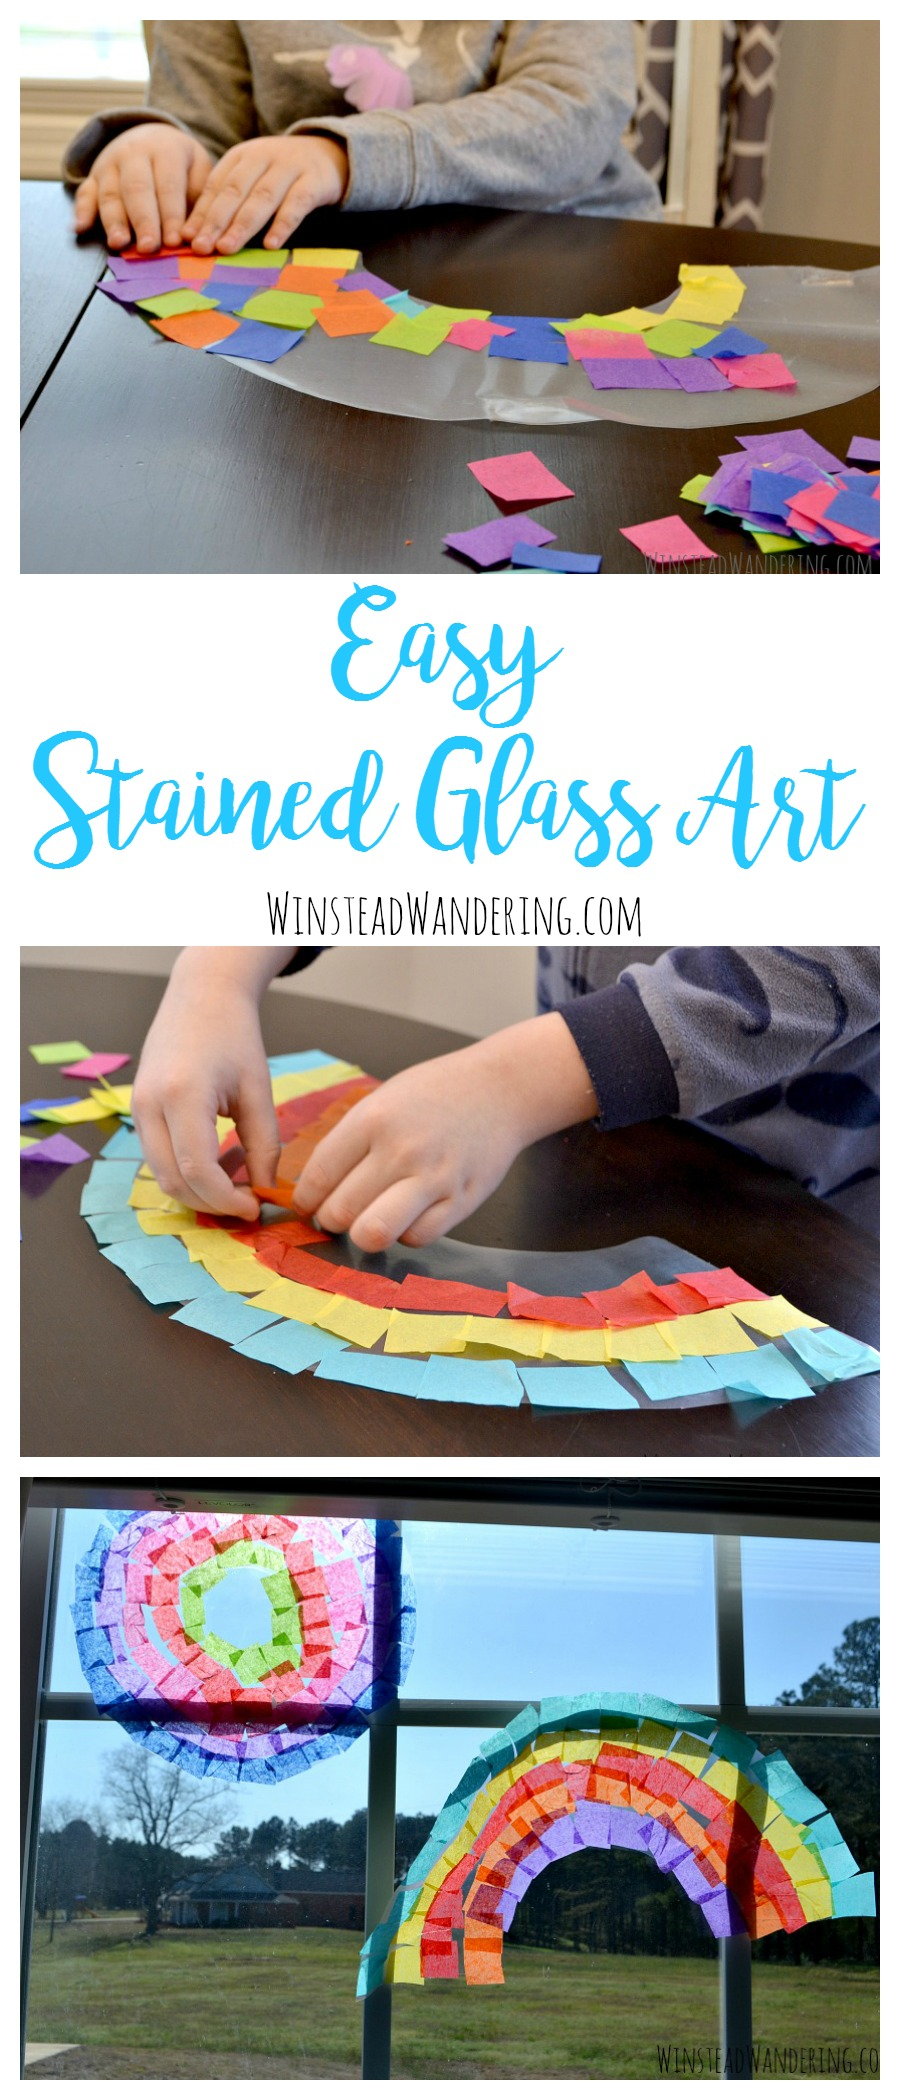 With just two inexpensive supplies and a few minutes of time, you and your toddler can create this easy stained glass art.